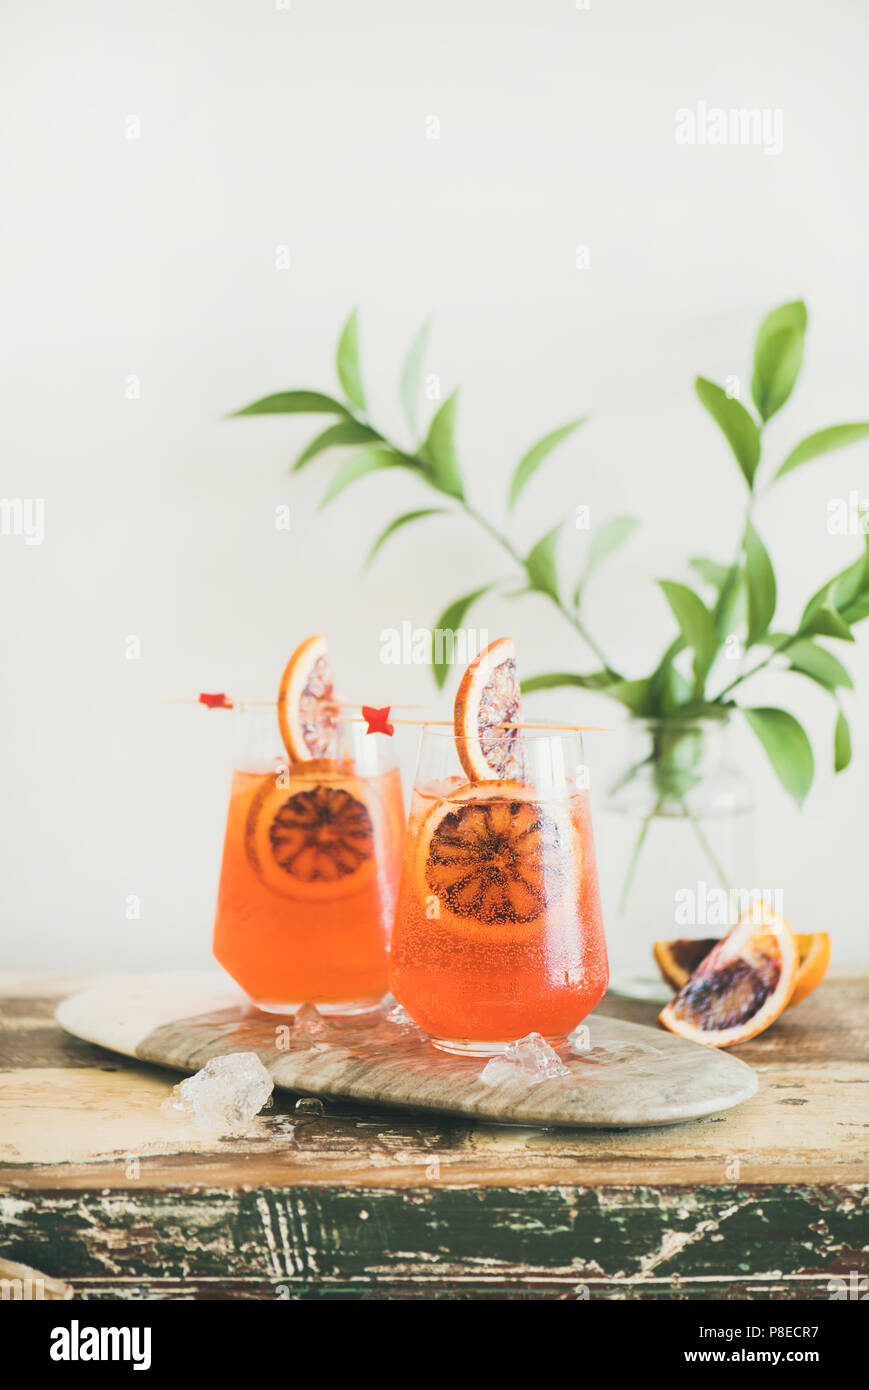 Glasses of Aperol Spritz alcohol cocktail with orange and ice - Stock Image